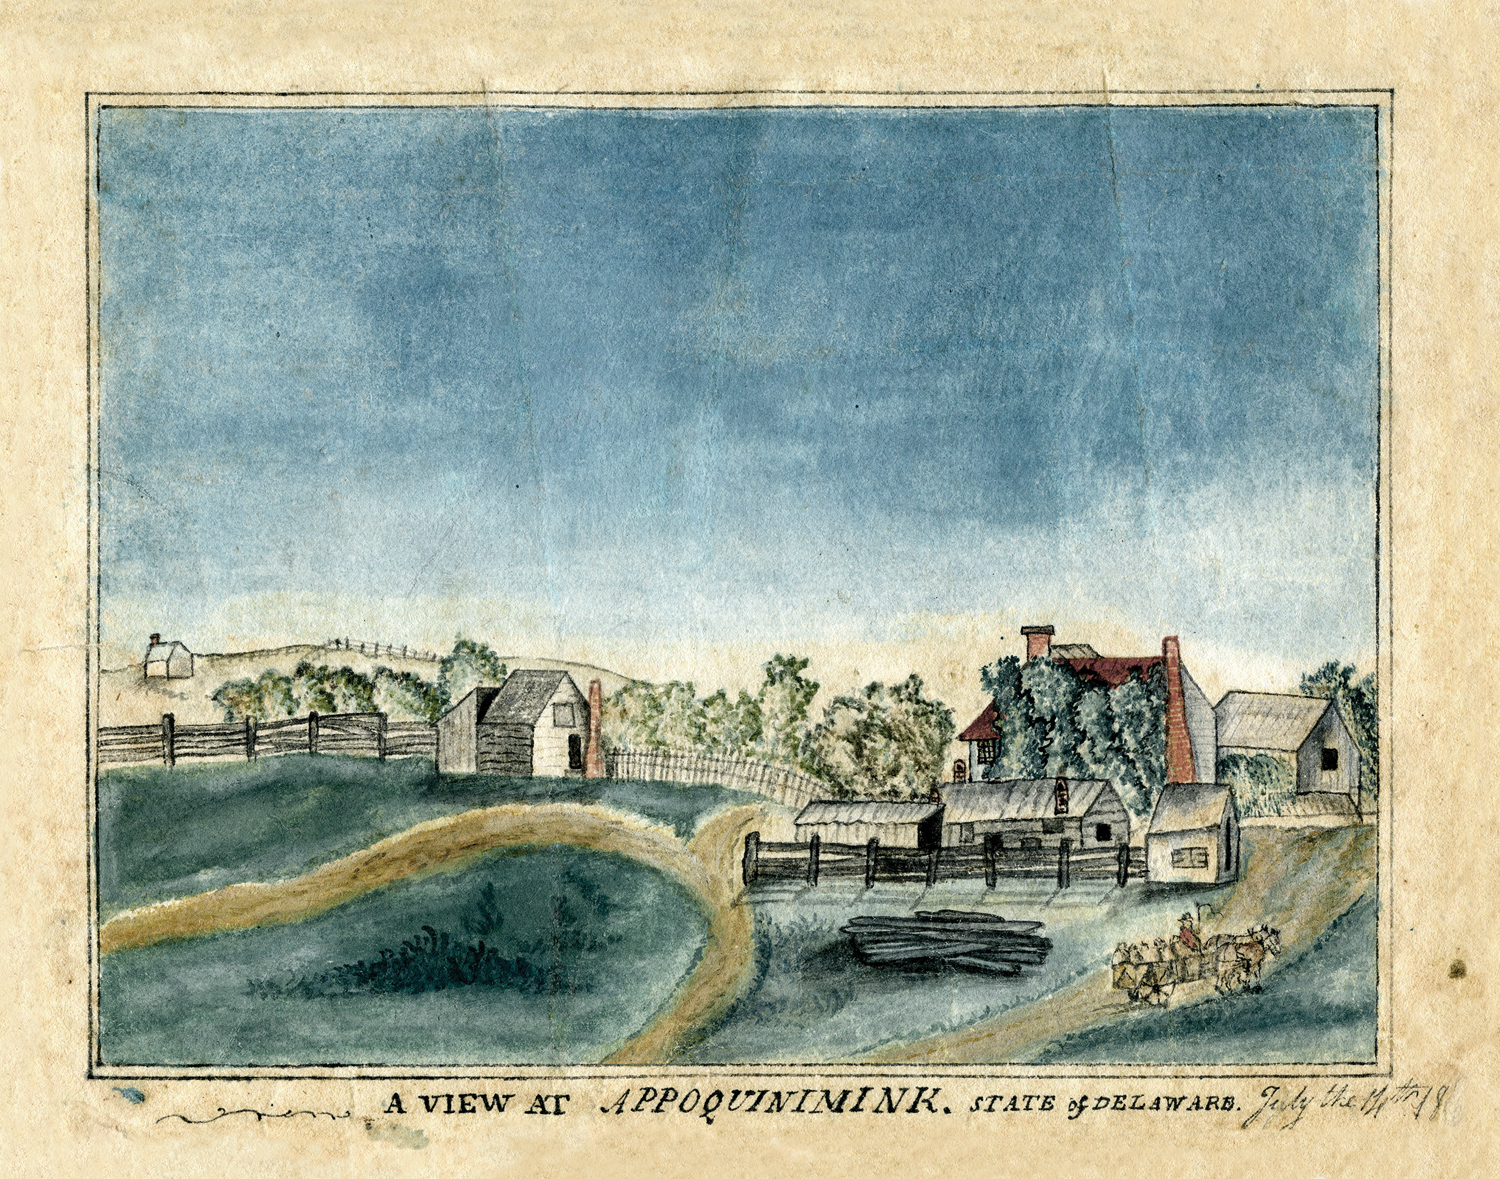 G. W. Janvier, A View at Appoquinimink, State of Delaware, watercolor on paper, 1805–20. Historic Odessa Foundation